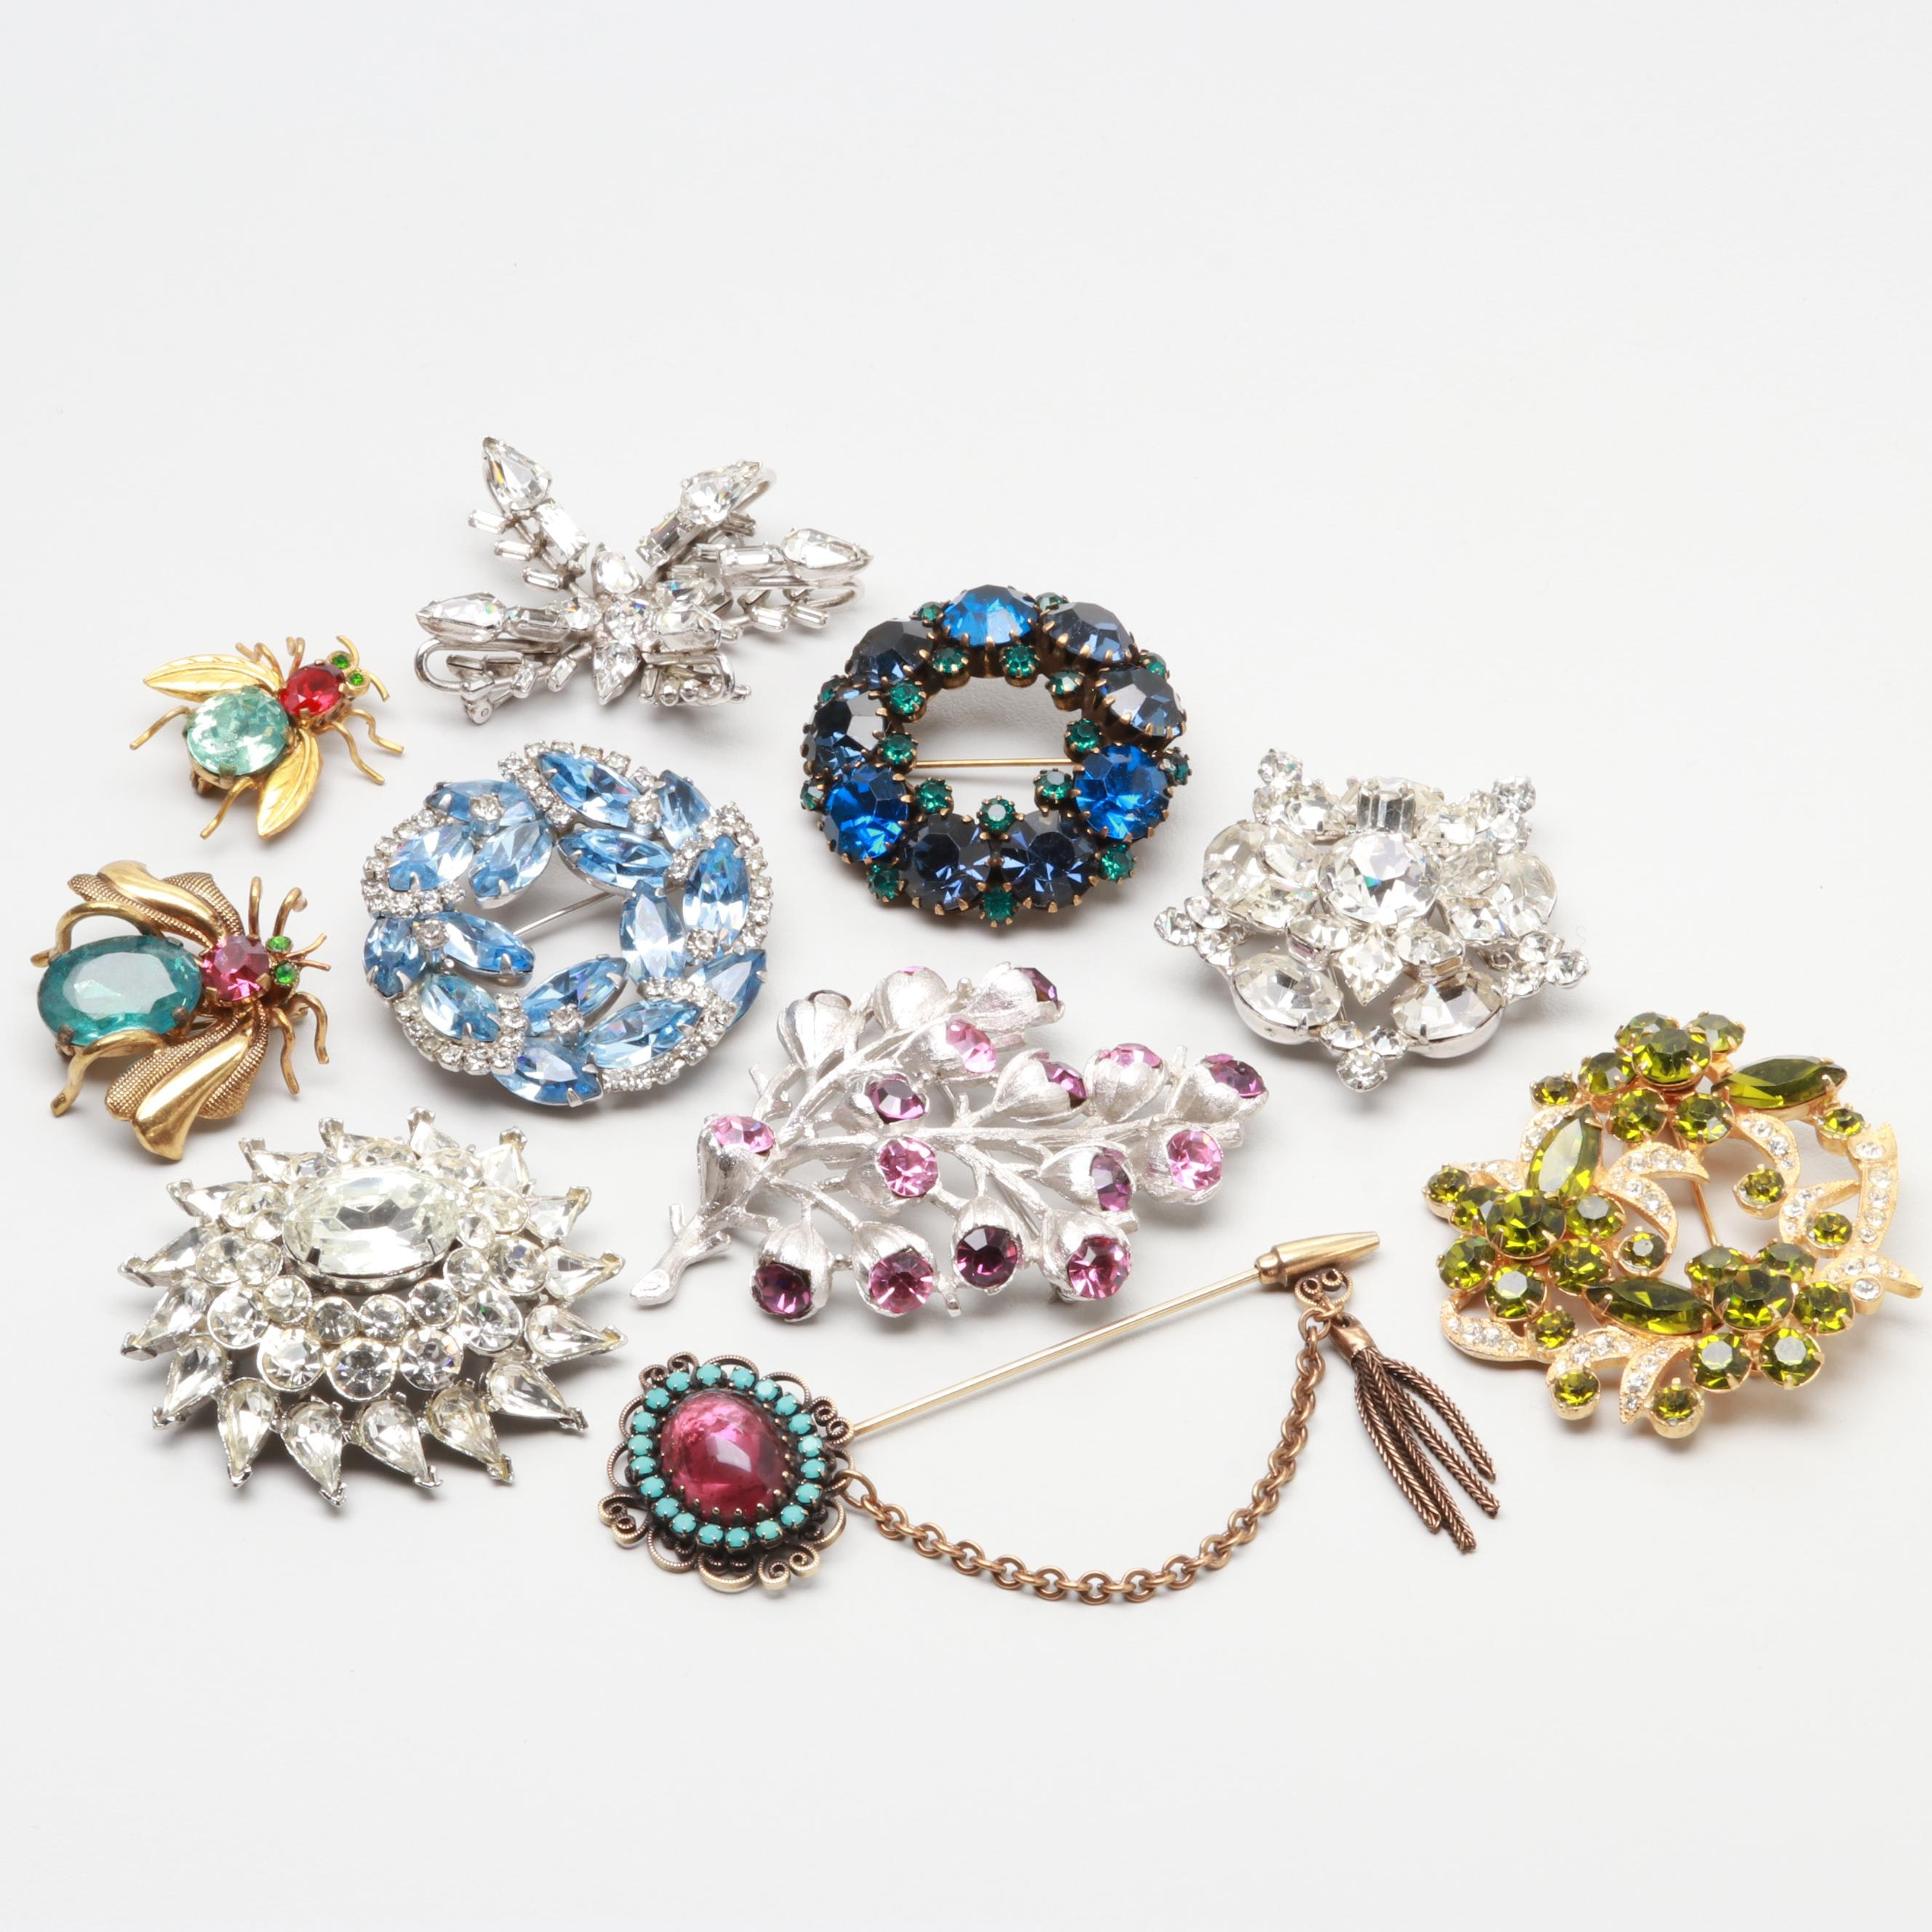 Silver and Gold Tone Glass Rhinestone Brooches with Eisenberg, Weiss, and Hobé